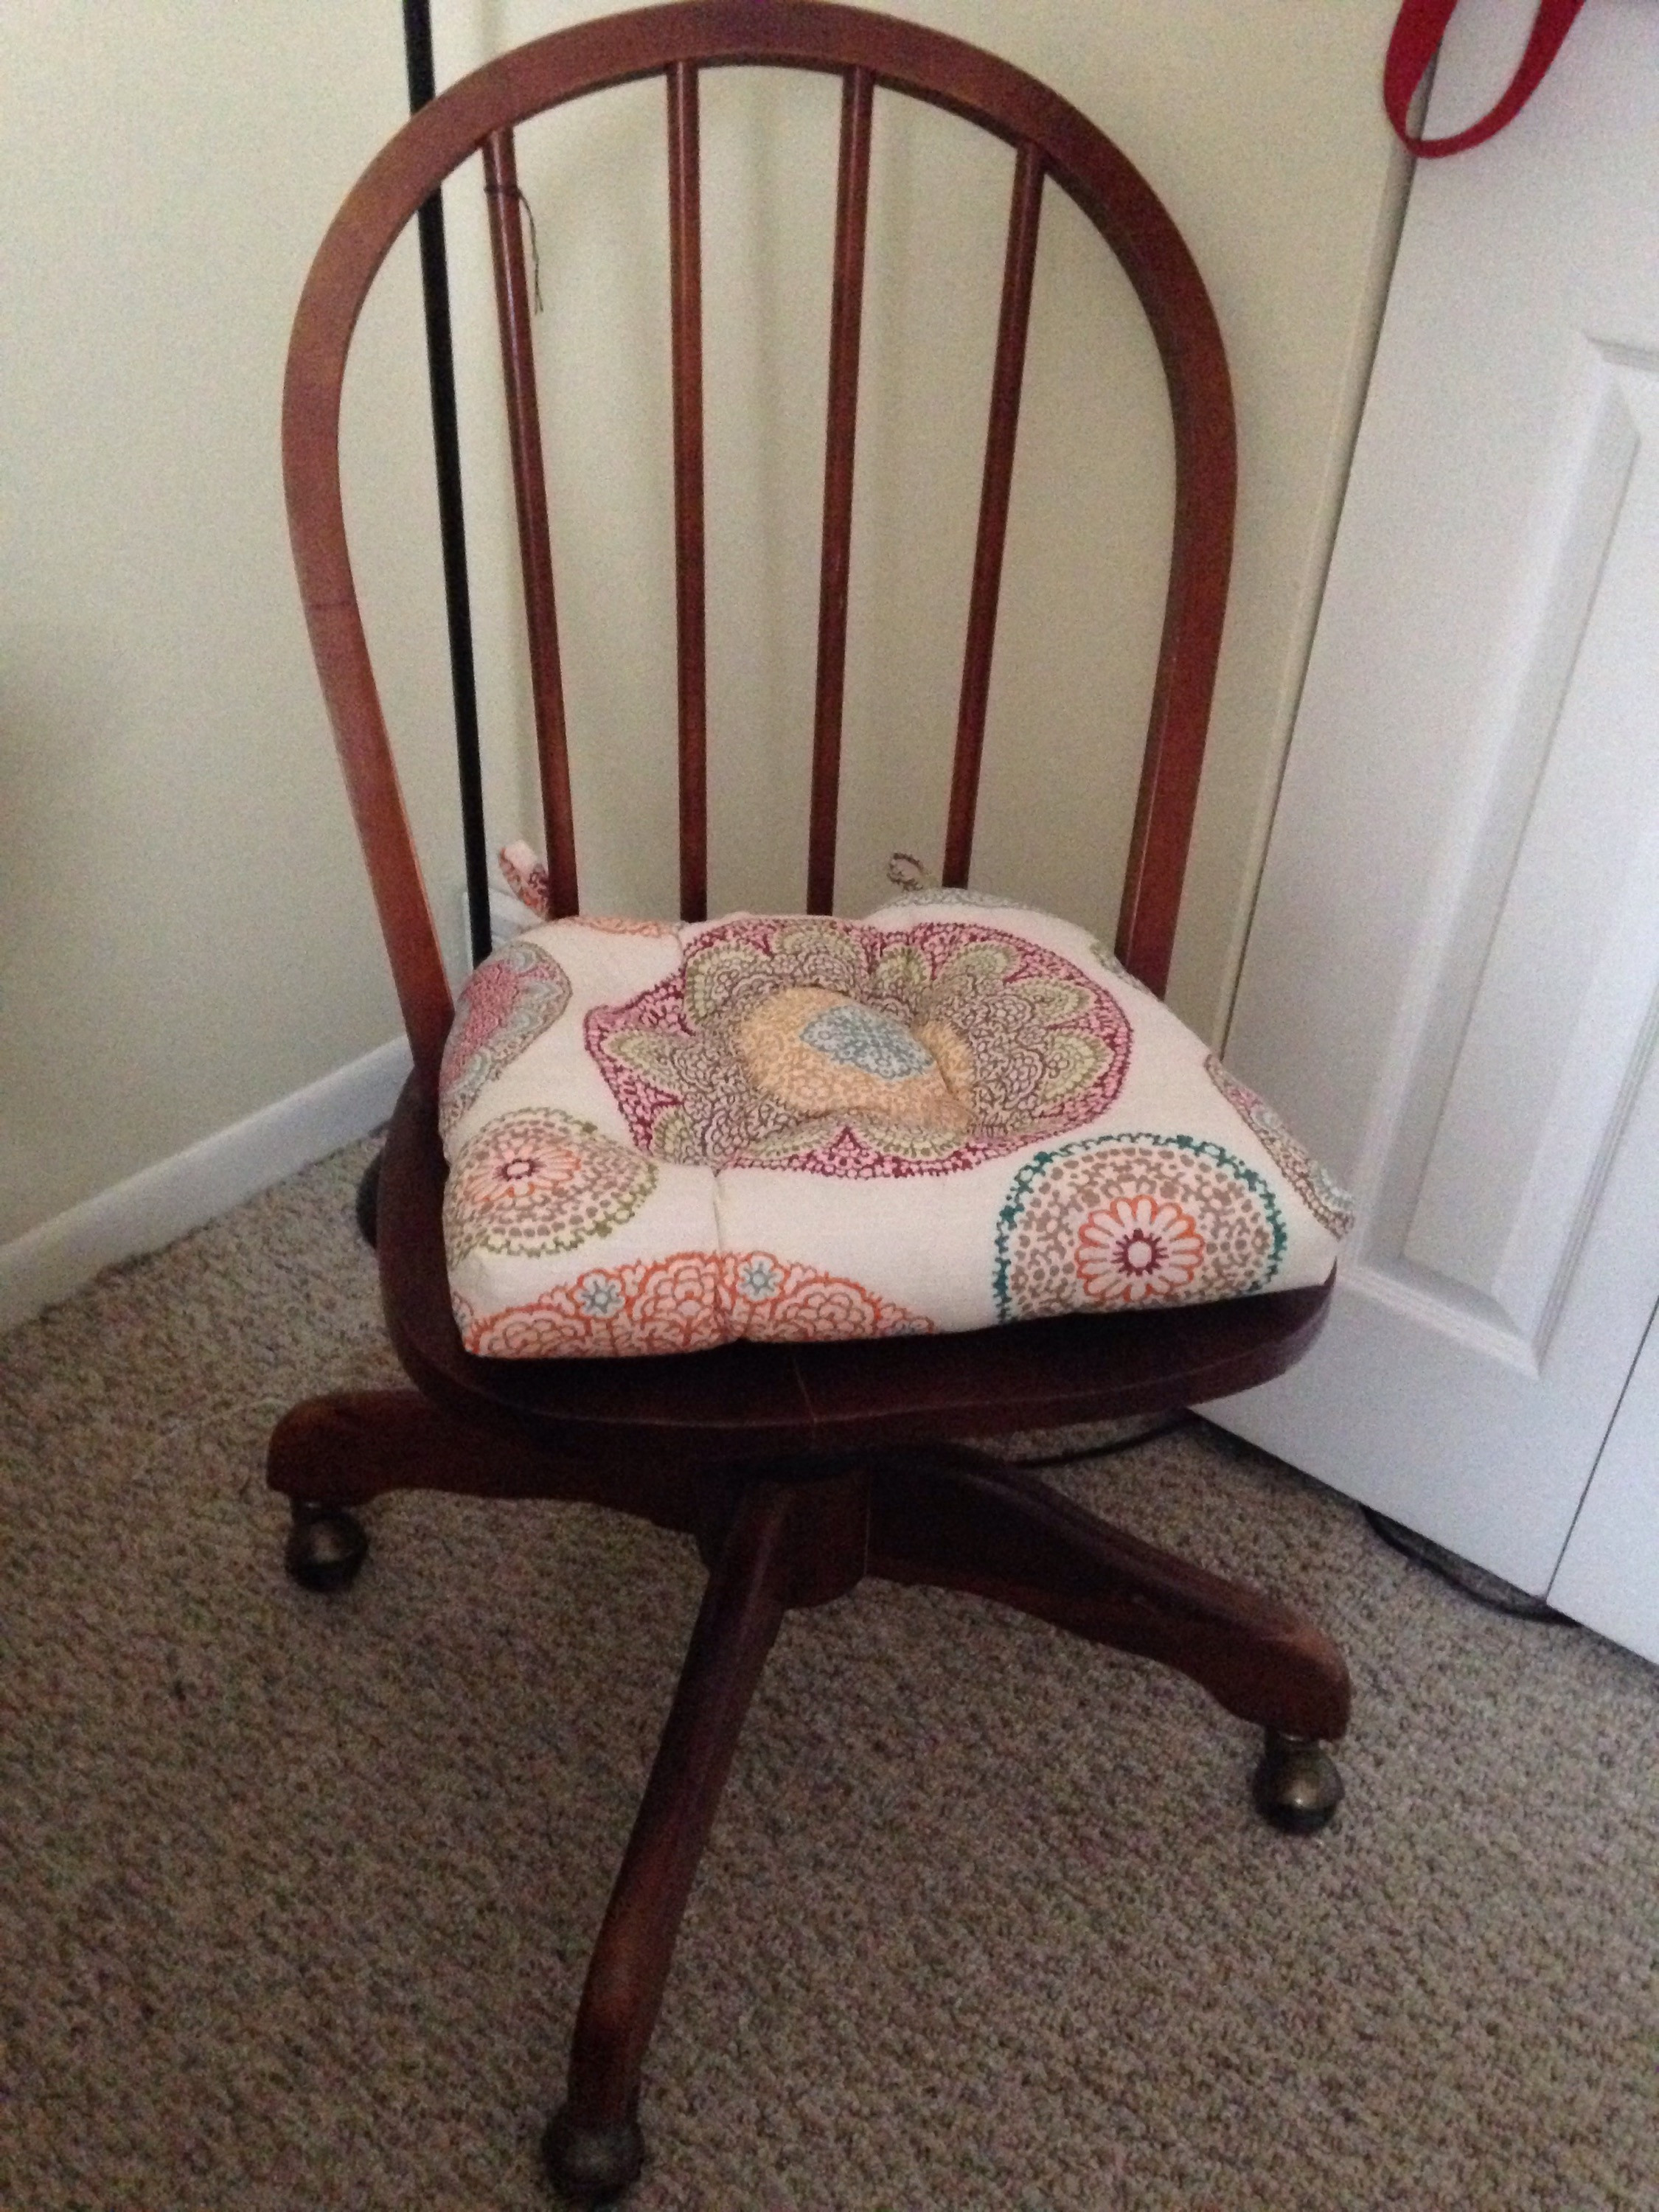 Best ideas about DIY Chair Cushion . Save or Pin DIY Seat Cushion – from a table runner – The College Crafter Now.